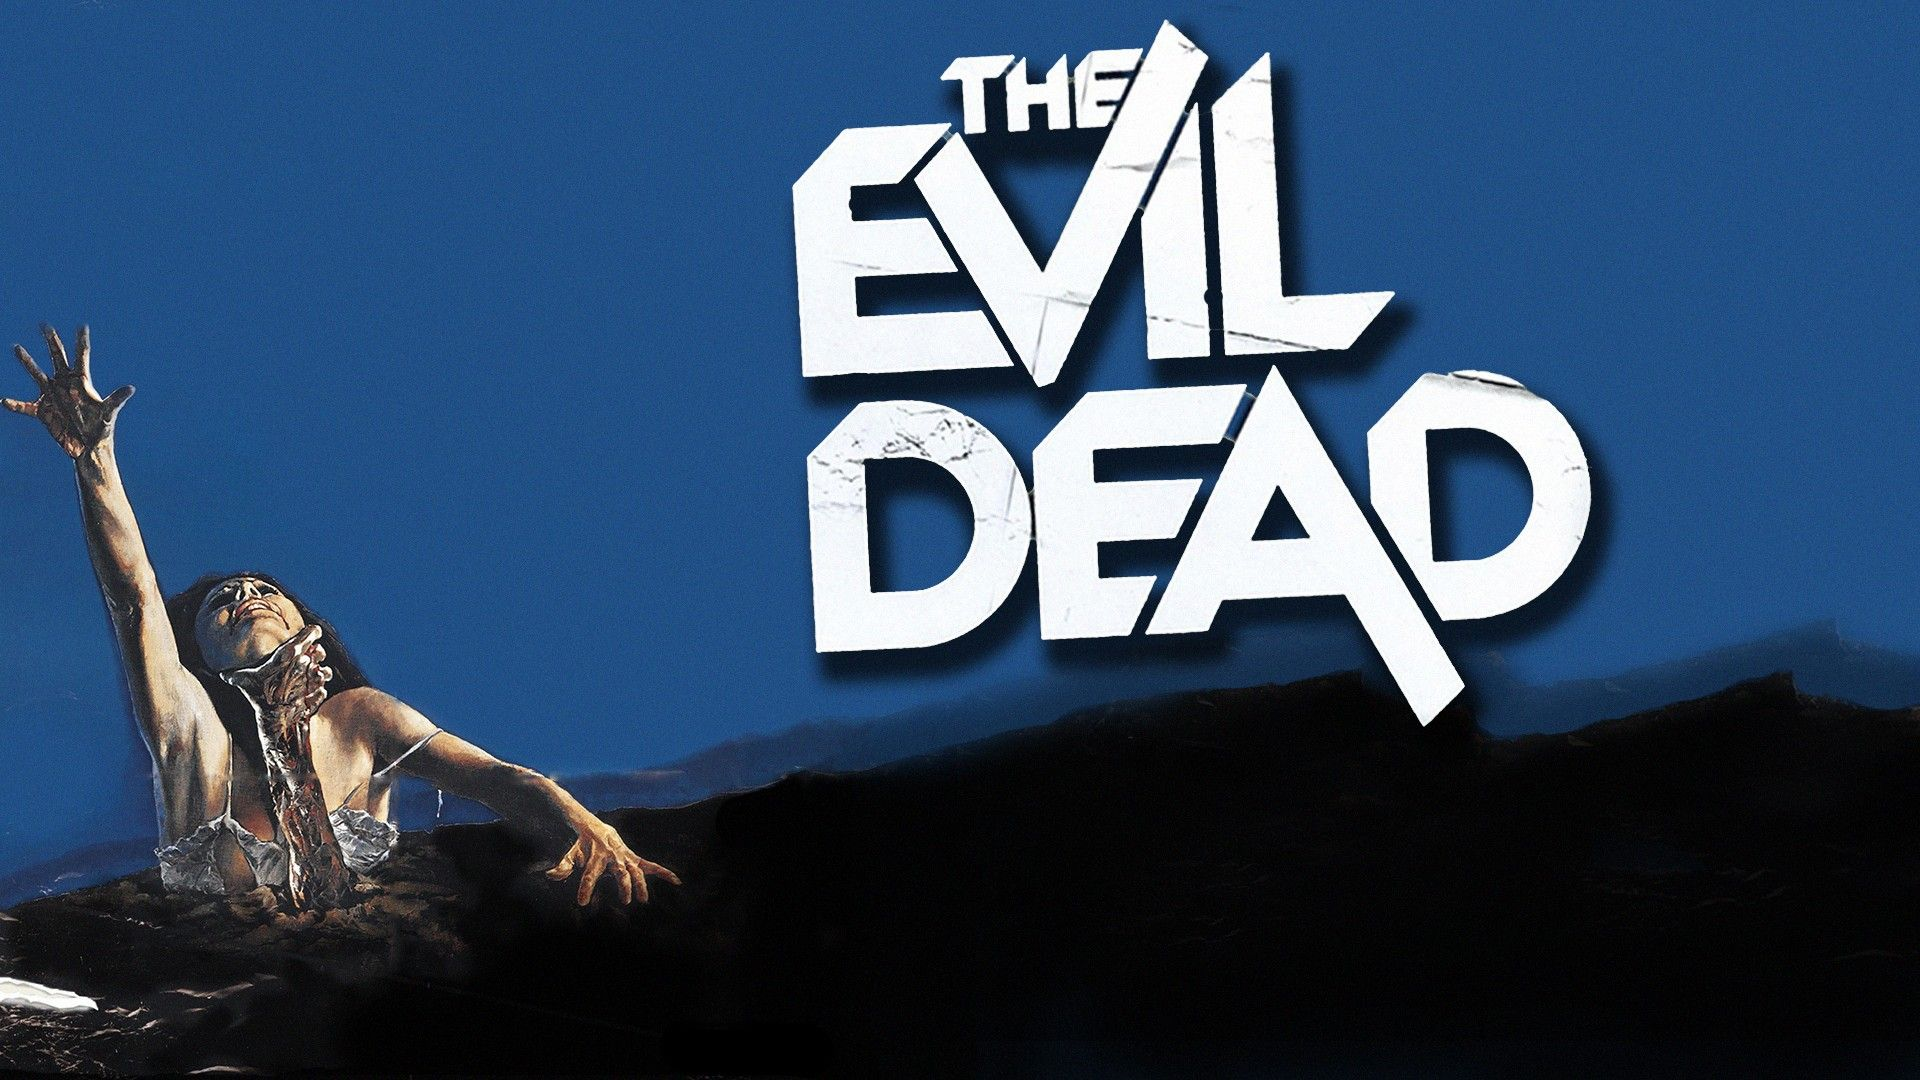 Evil Dead 2015 Wallpapers 1920x1080 - Wallpaper Cave